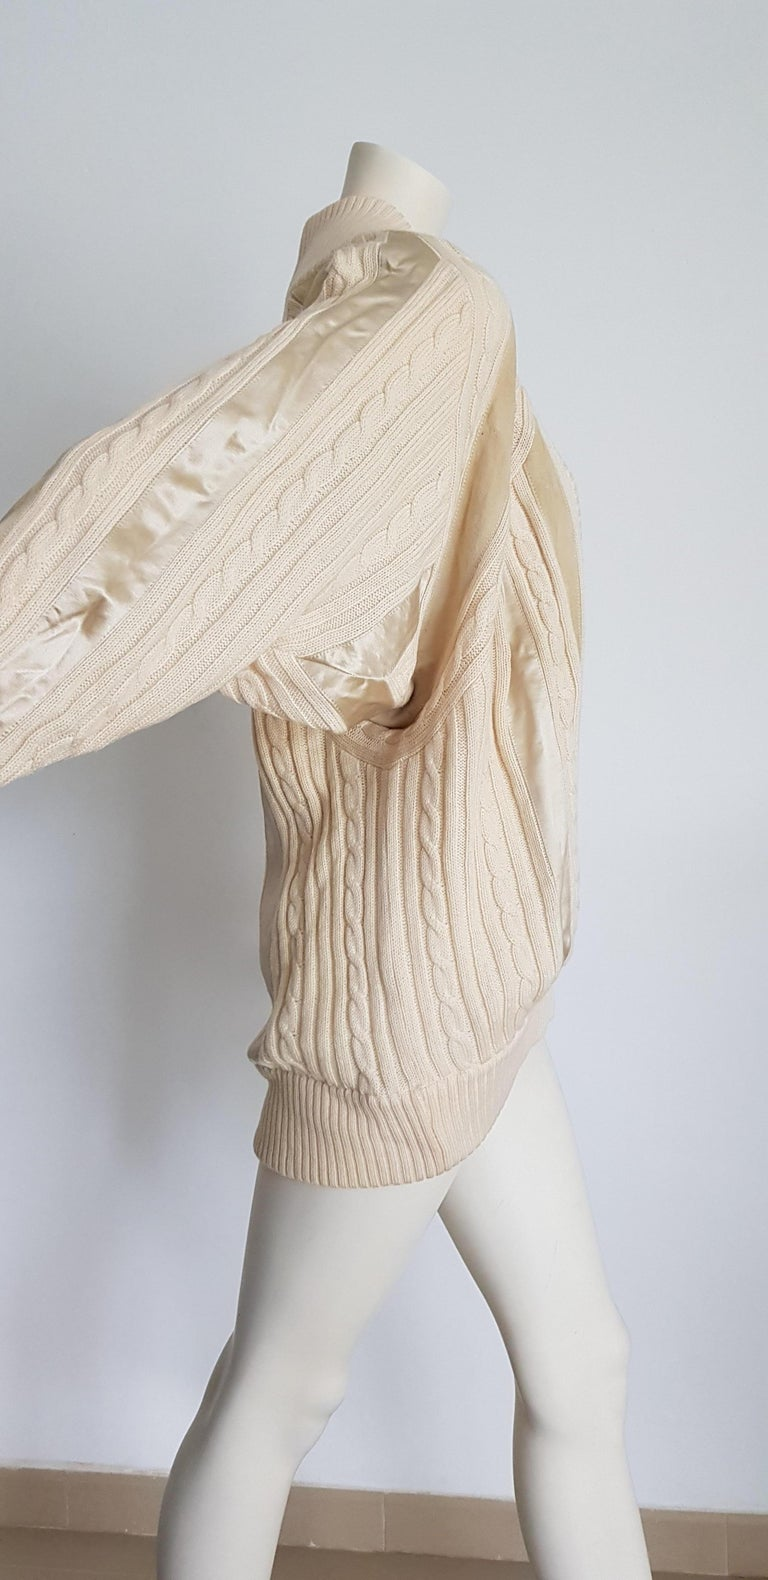 Women's or Men's HERMES white cream wool collection sweater with silk suede strips - Unworn, New For Sale